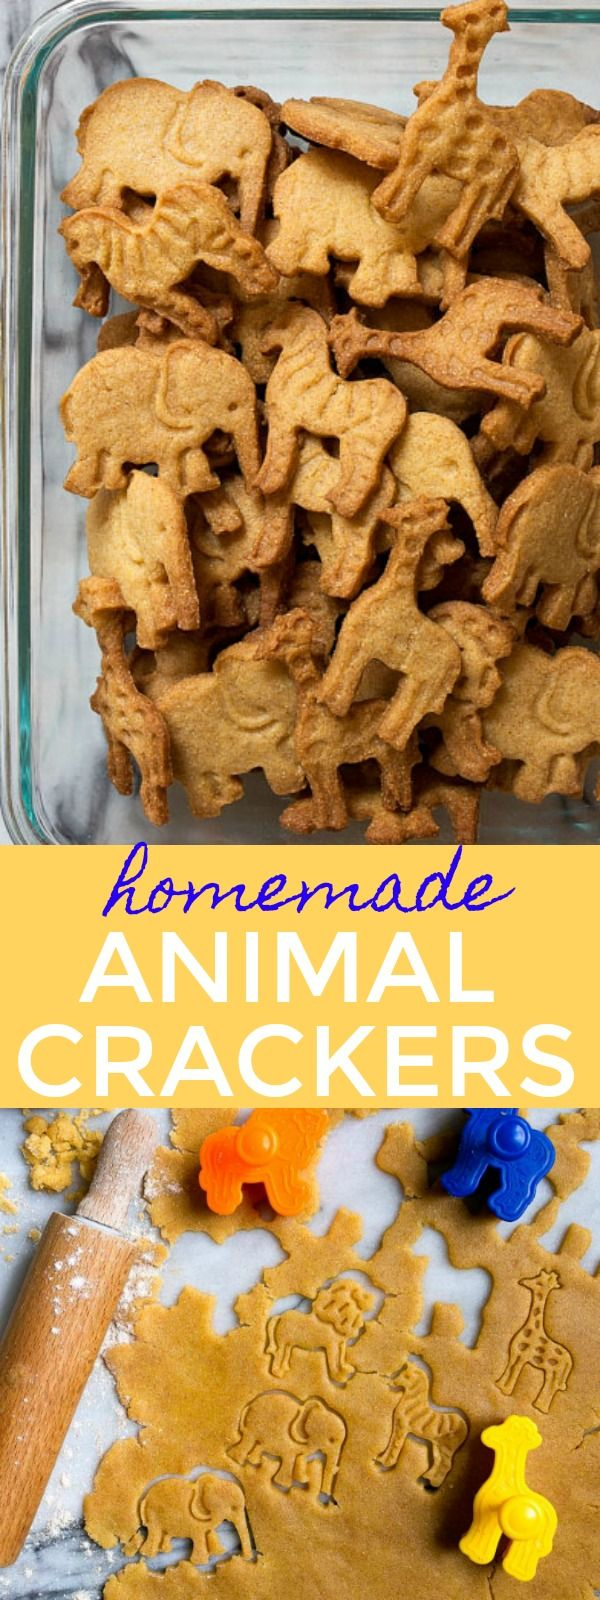 Homemade Animal Crackers Cookies for kids. Better than store-bought kids snacks! Healthy after school snacks for kids. Kid friendly cookies.